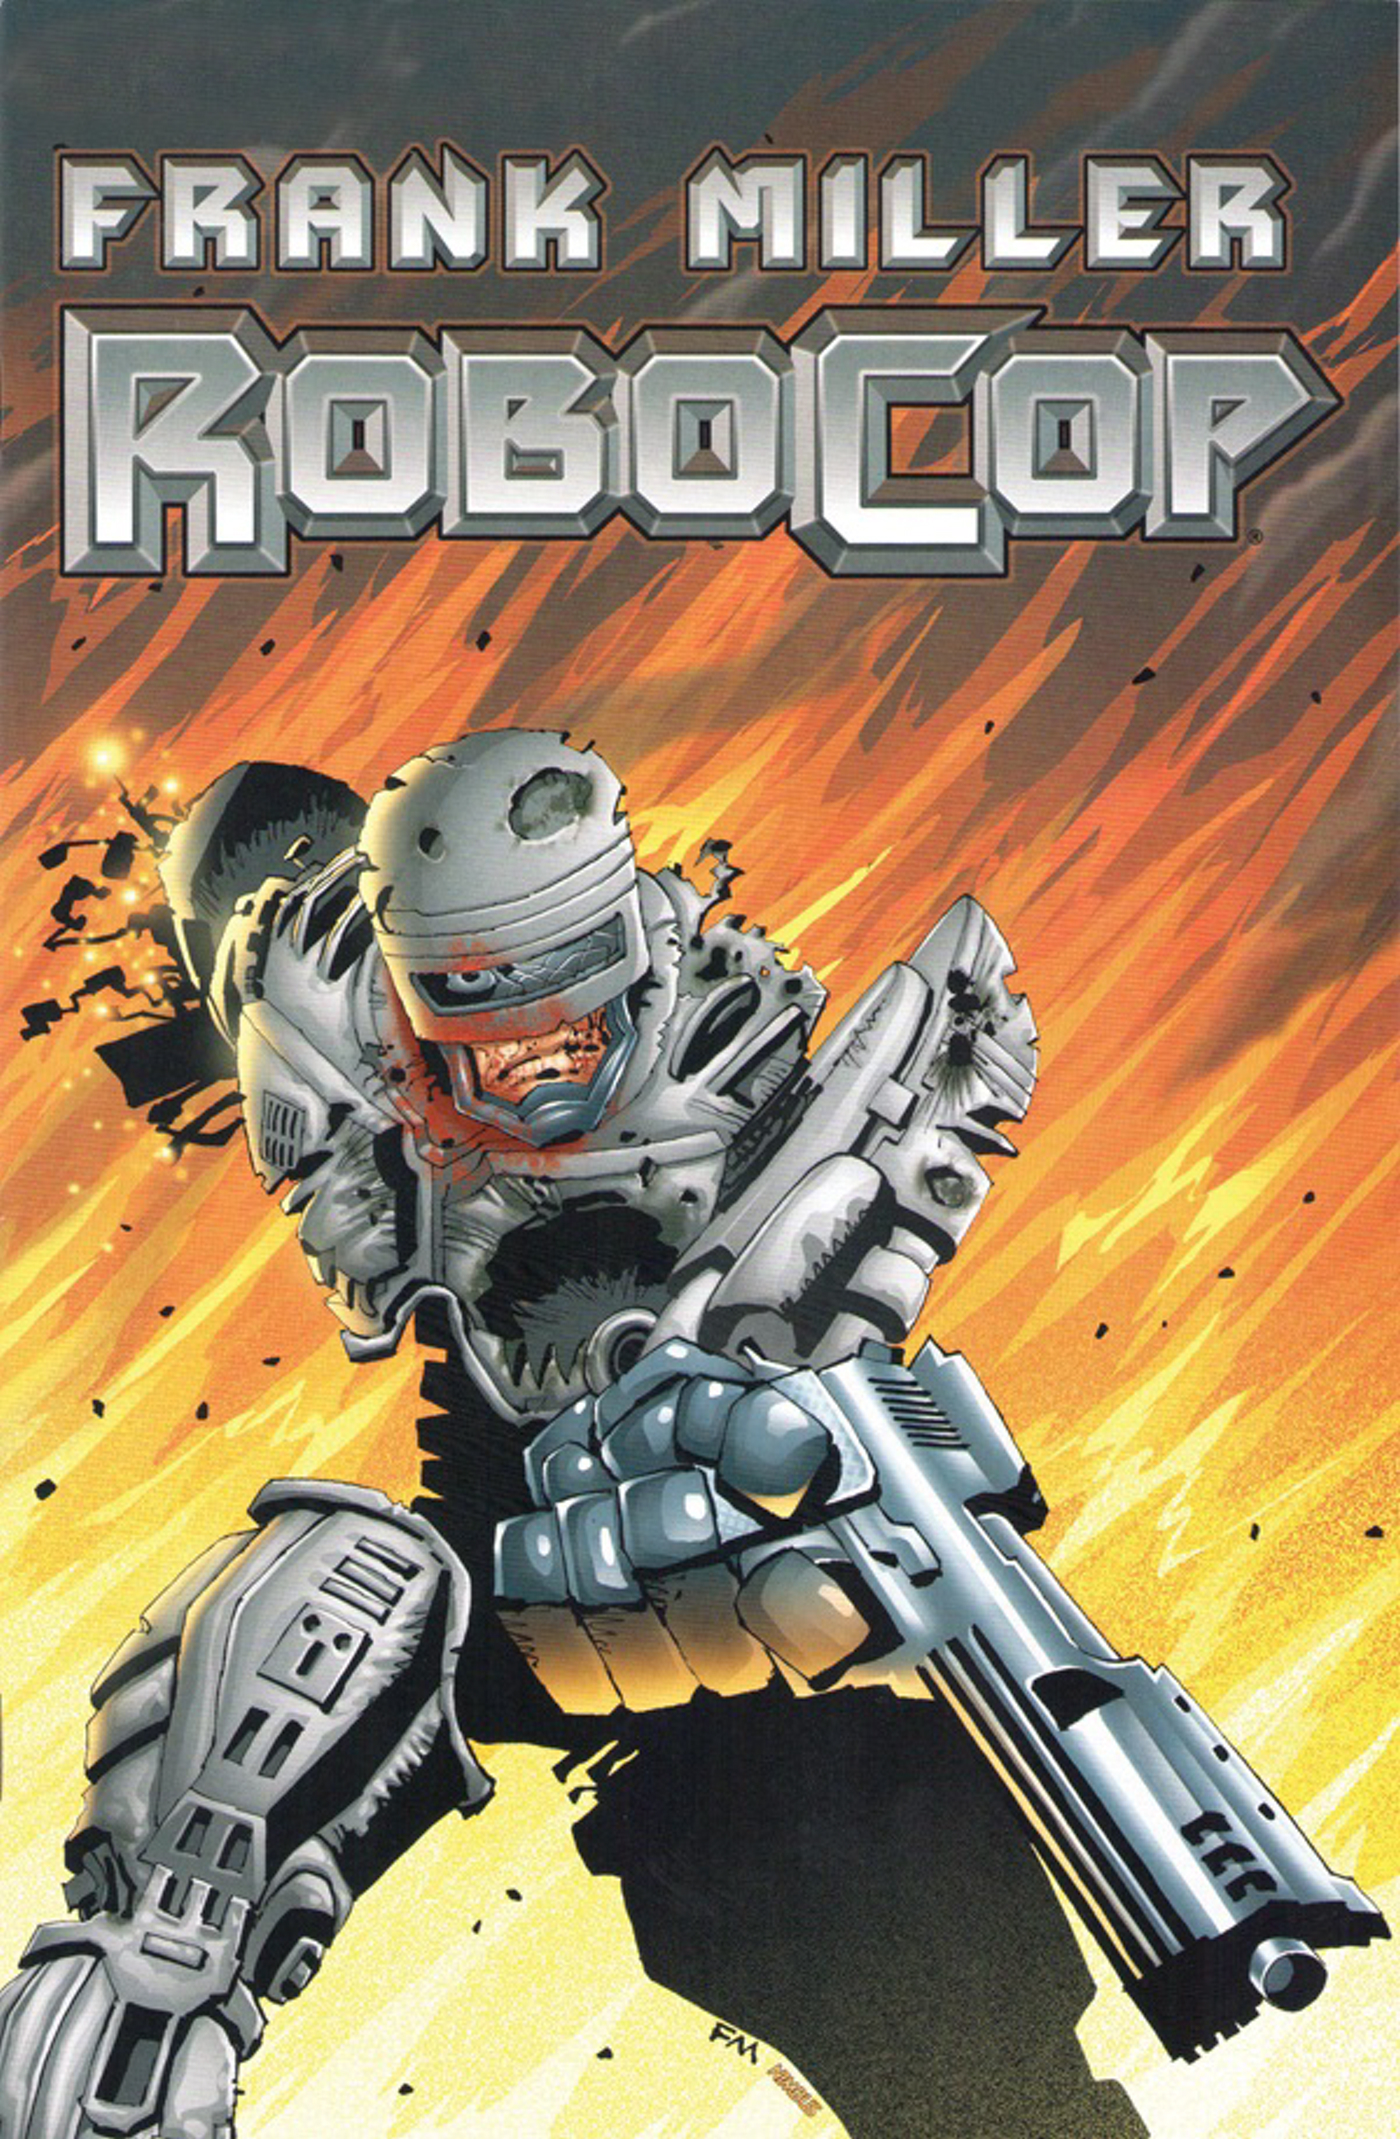 Robocop-volume-1-9781608863754_hr